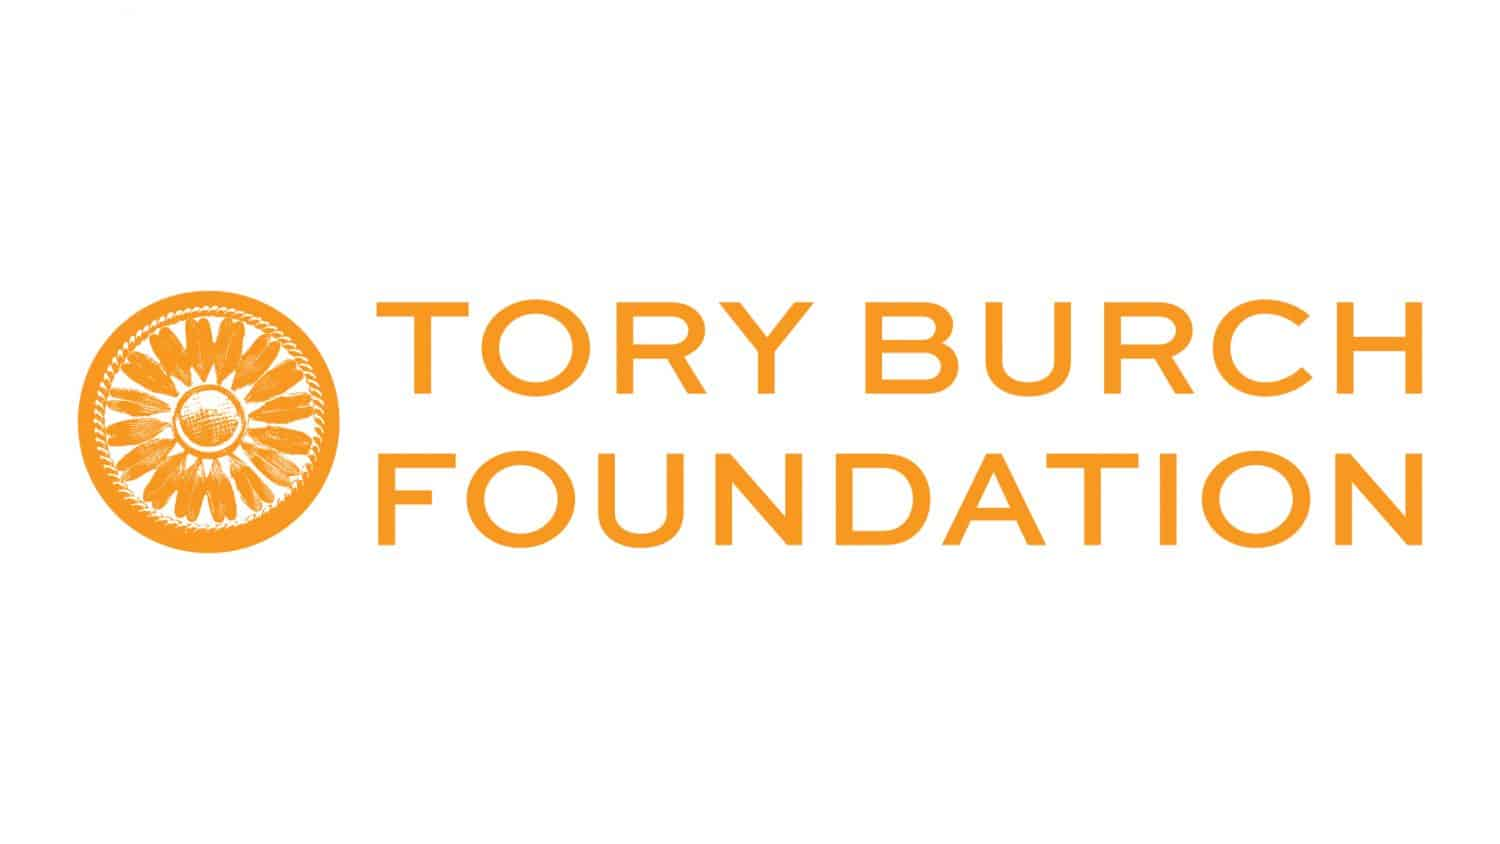 Tory Burch Foundation Fellowship Program